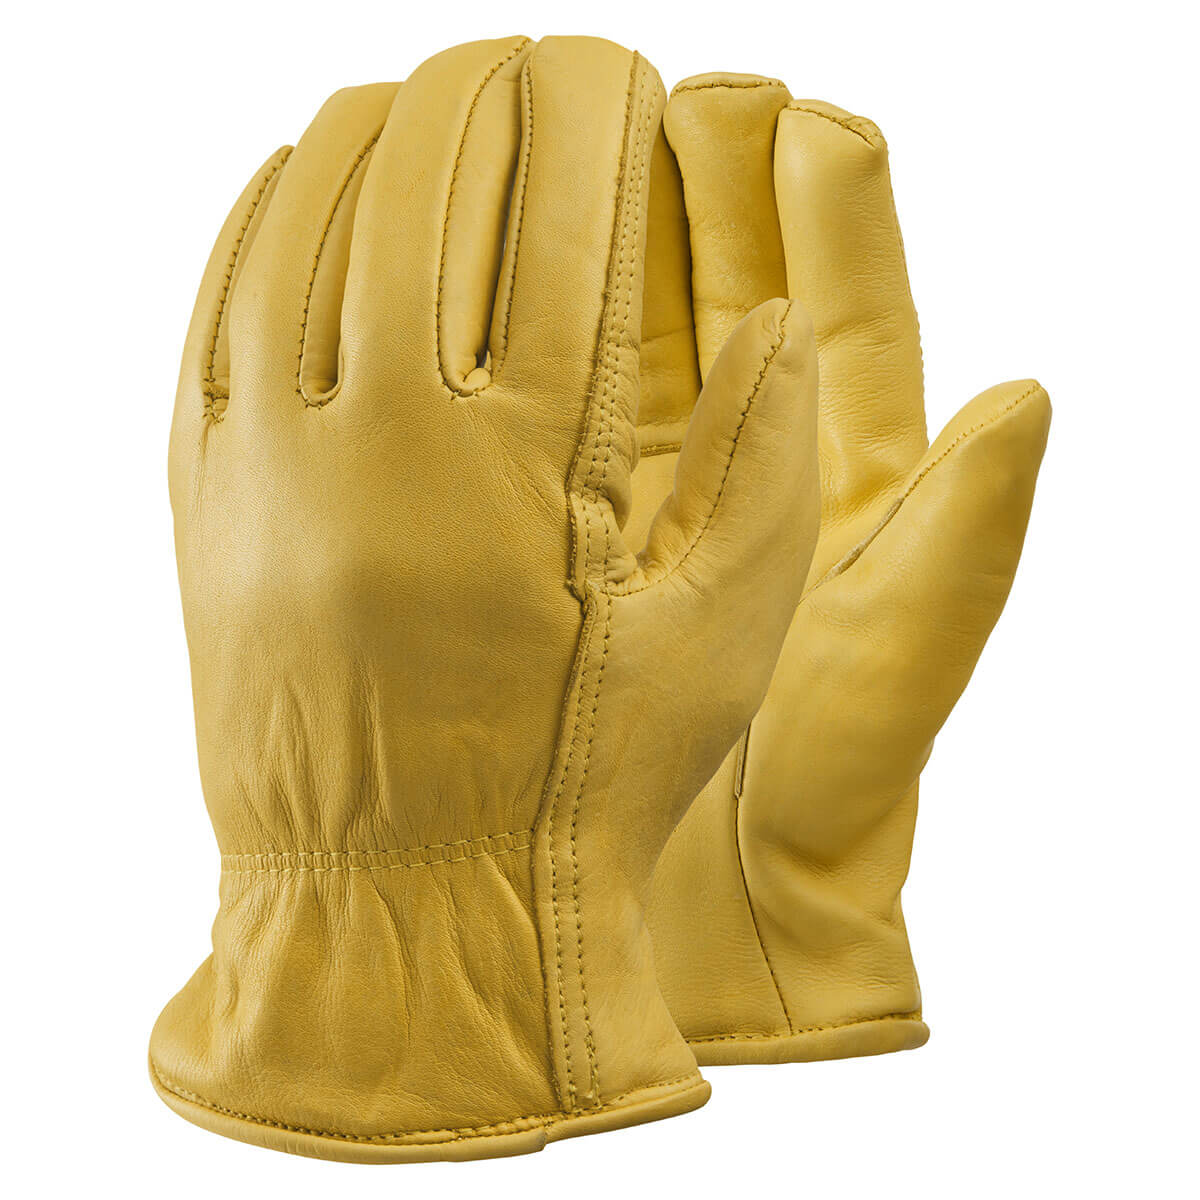 GL7750 Fleece Lined Leather Drivers Gloves